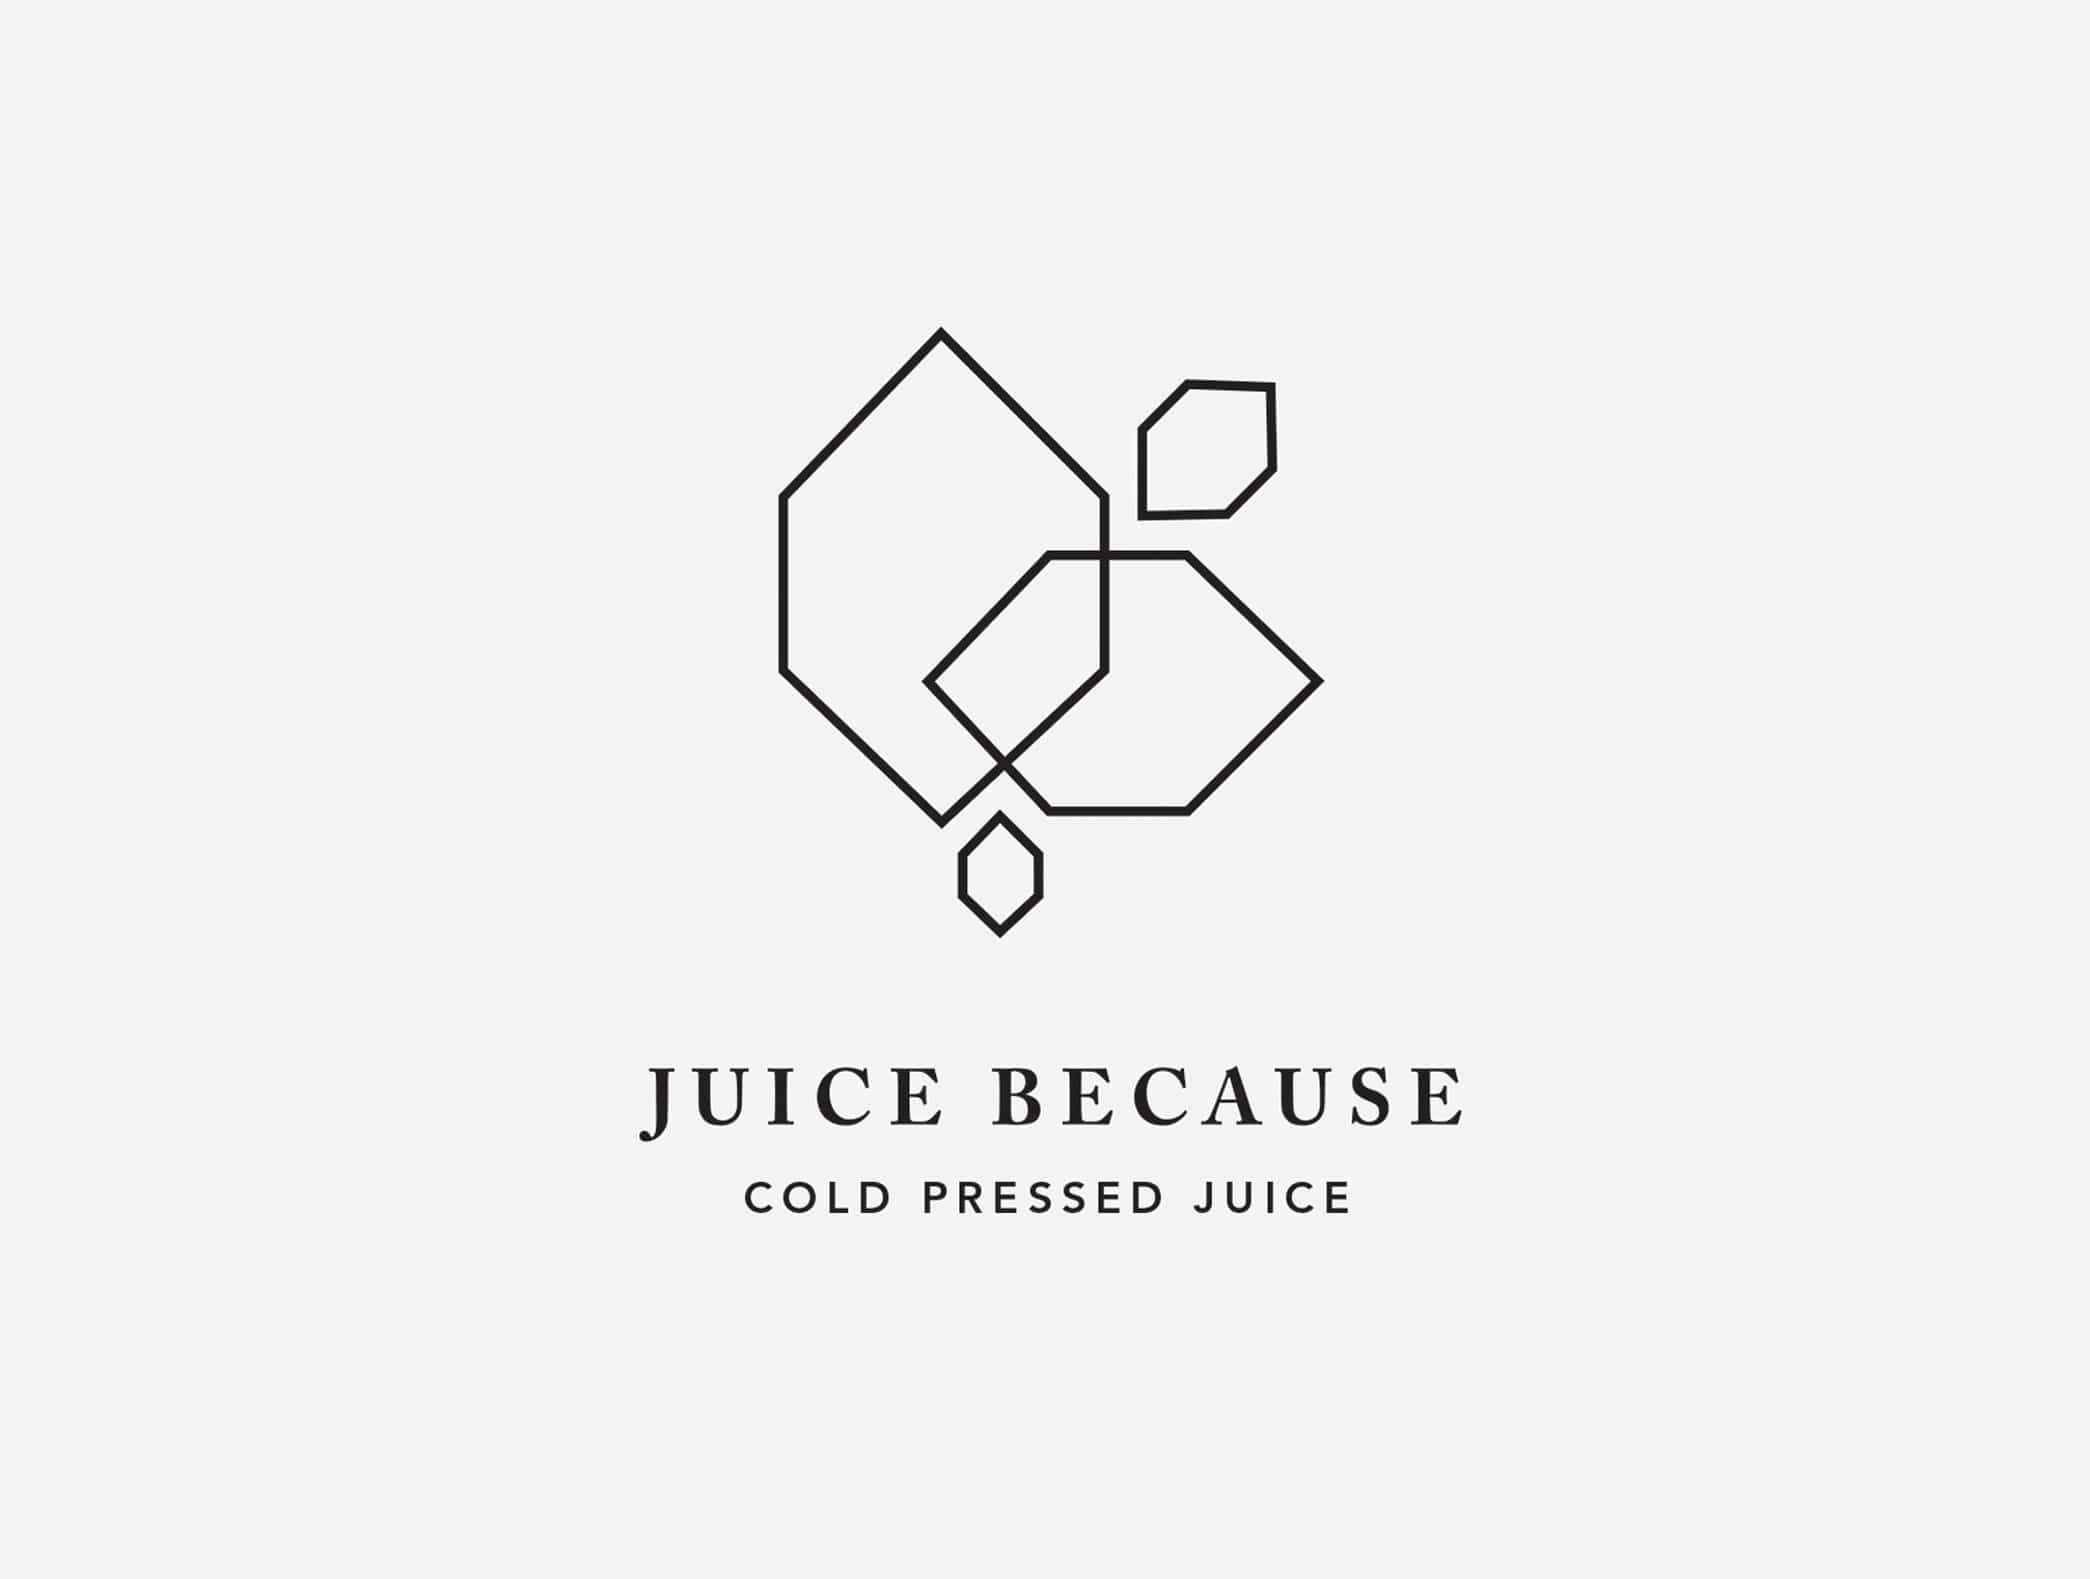 Juice Because logo